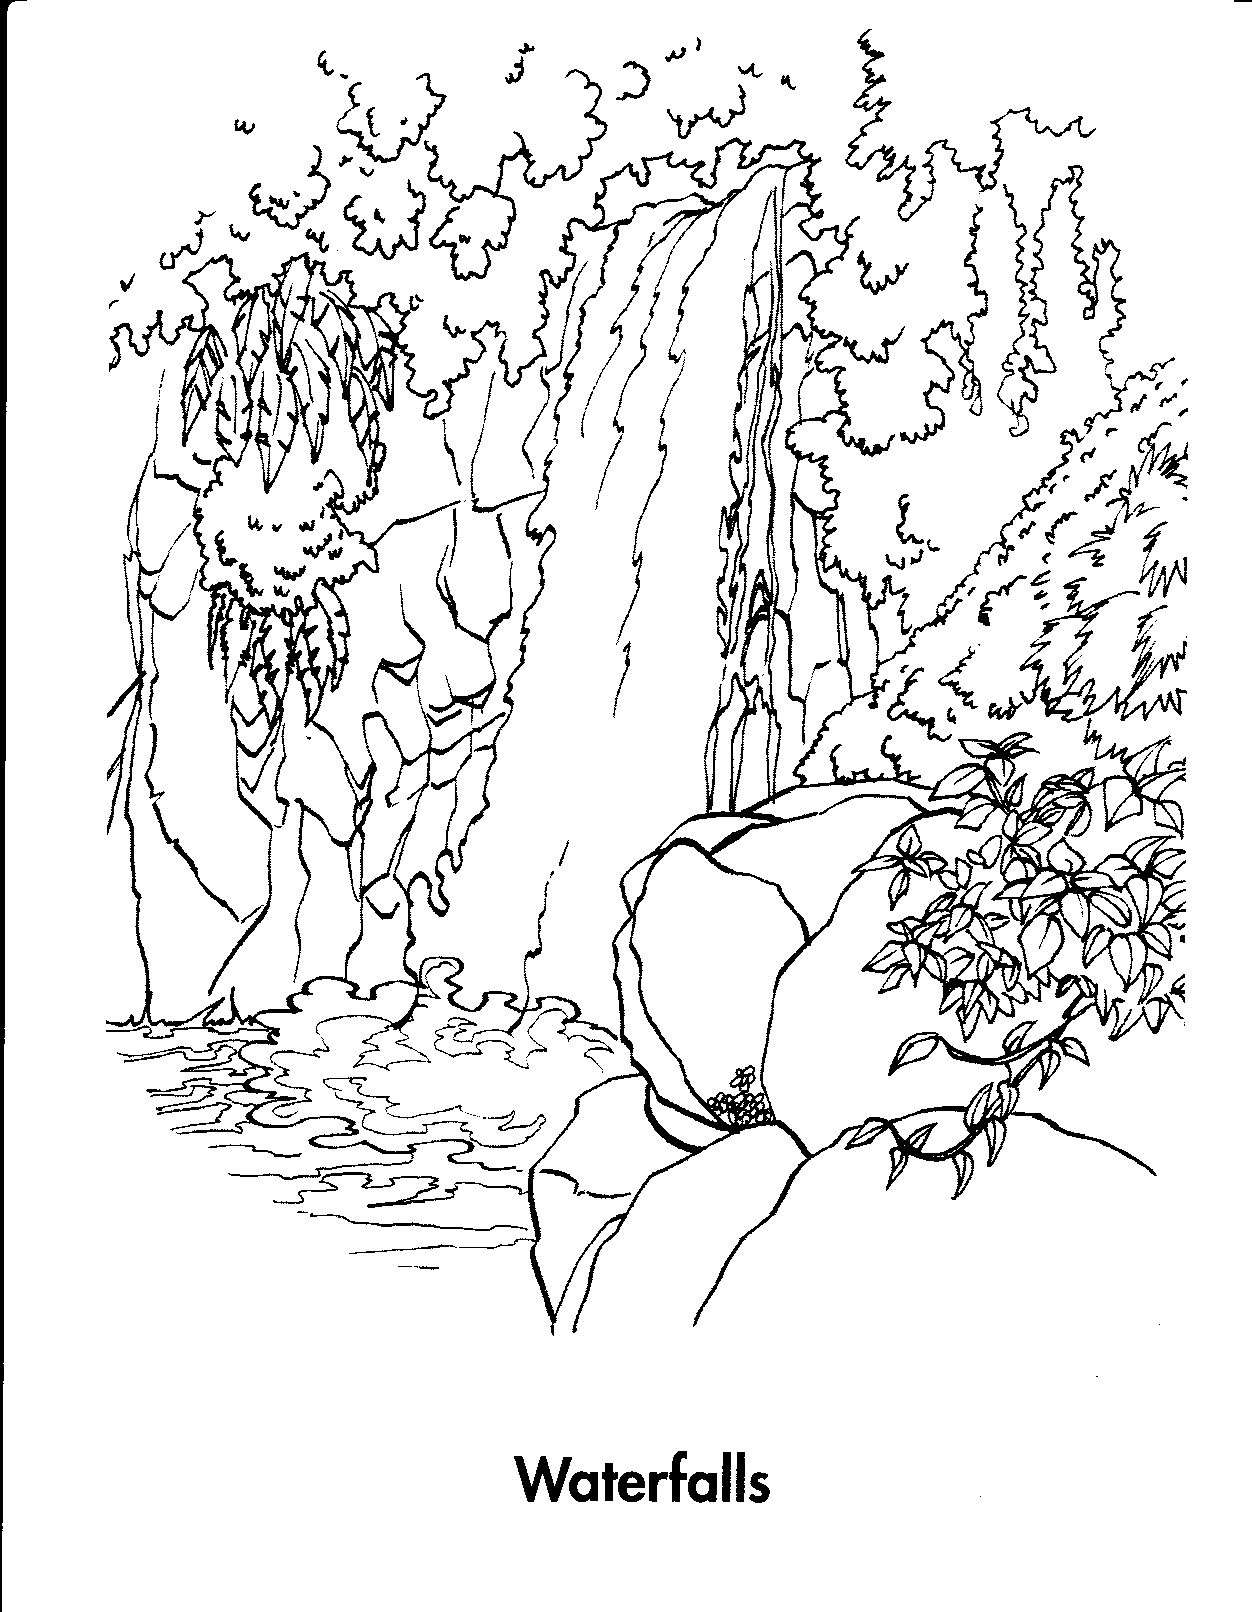 Waterfall Coloring Pages Printable   Photos   Pinterest   Coloring - Free Printable Waterfall Coloring Pages